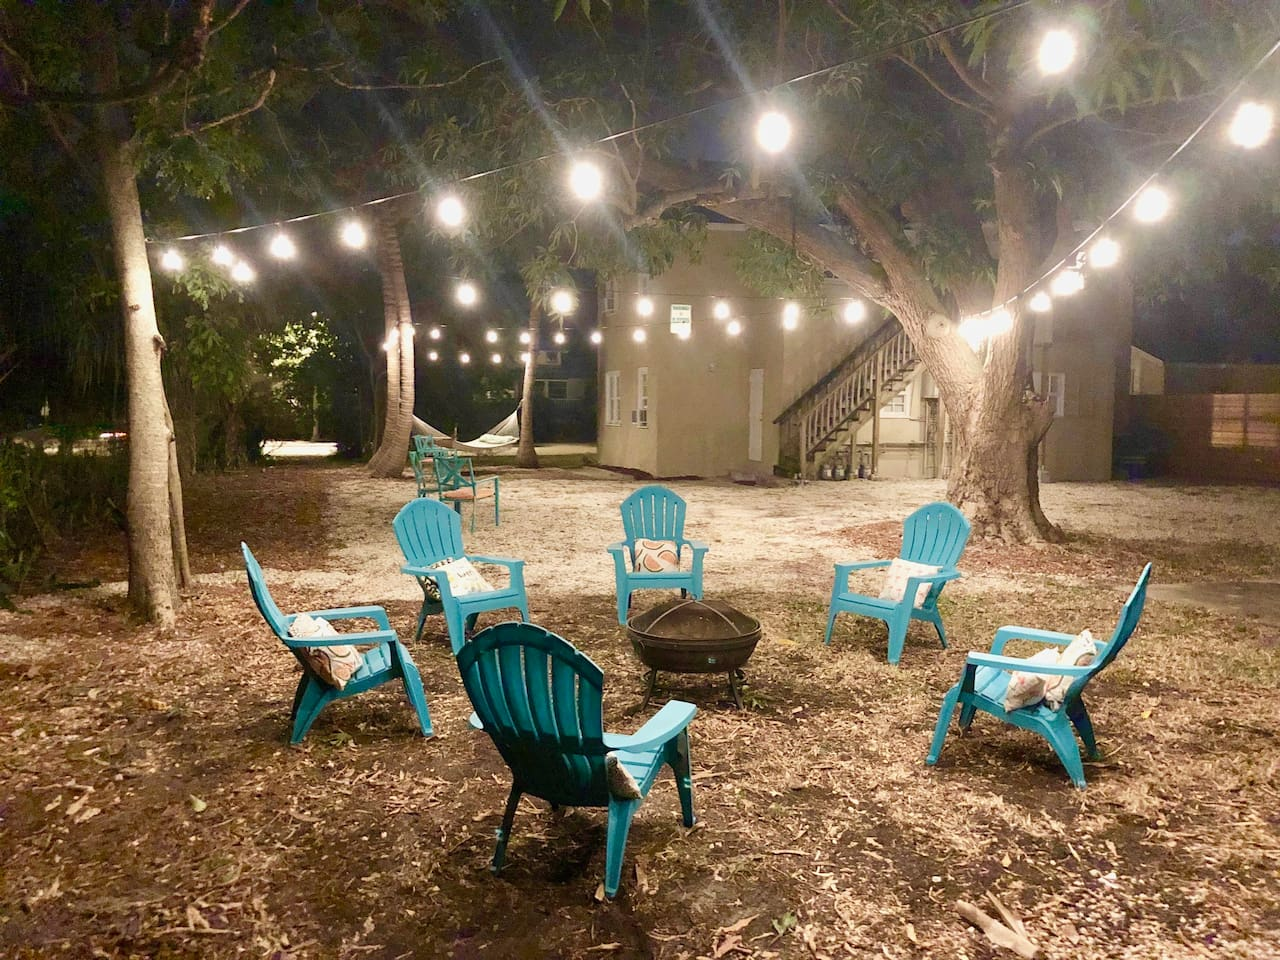 Cozy outdoor space with firepit!  Edison bulb lights included to help set the mood.